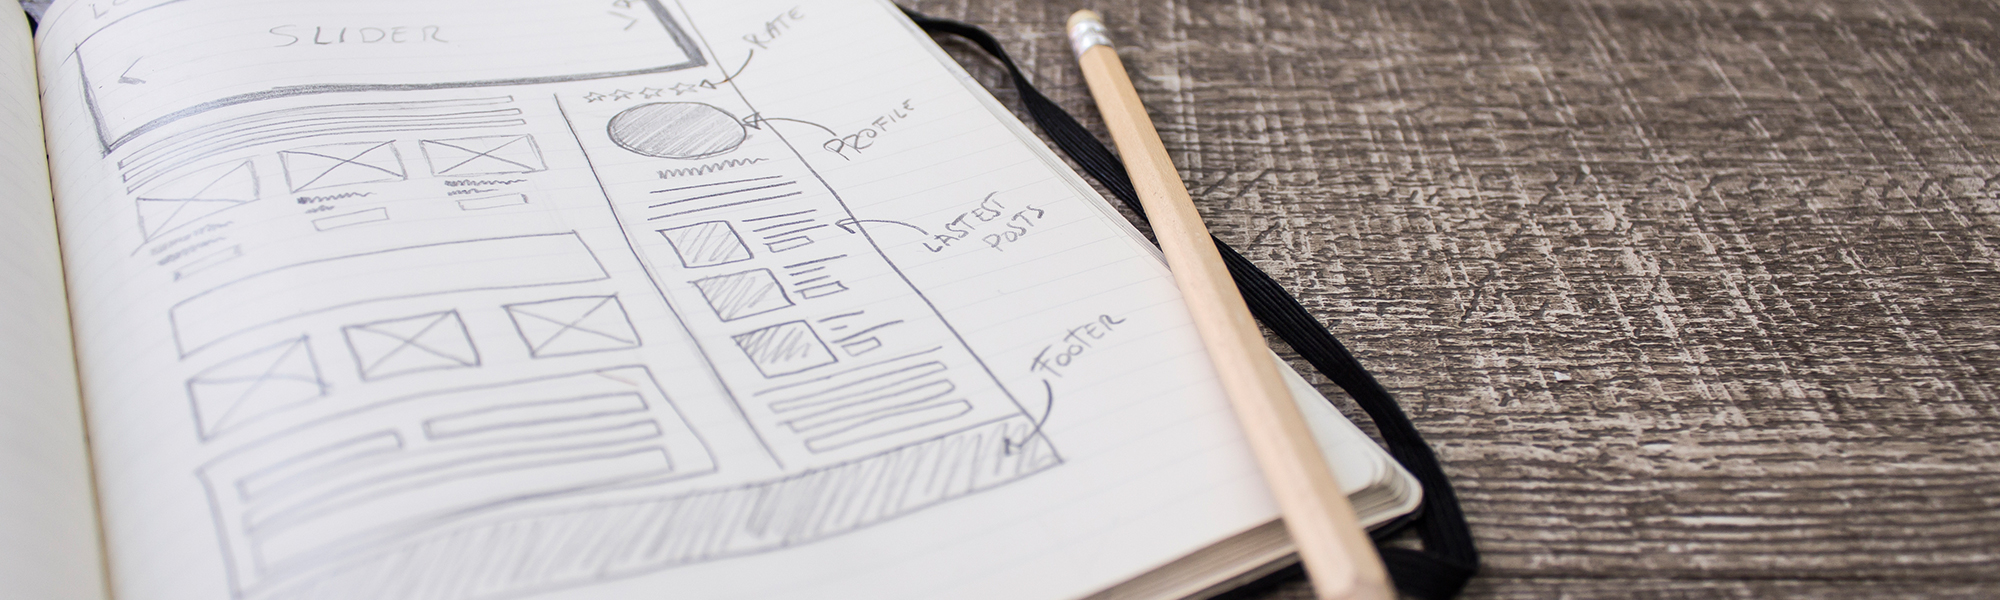 DIY website builders pros cons do-it-yourself